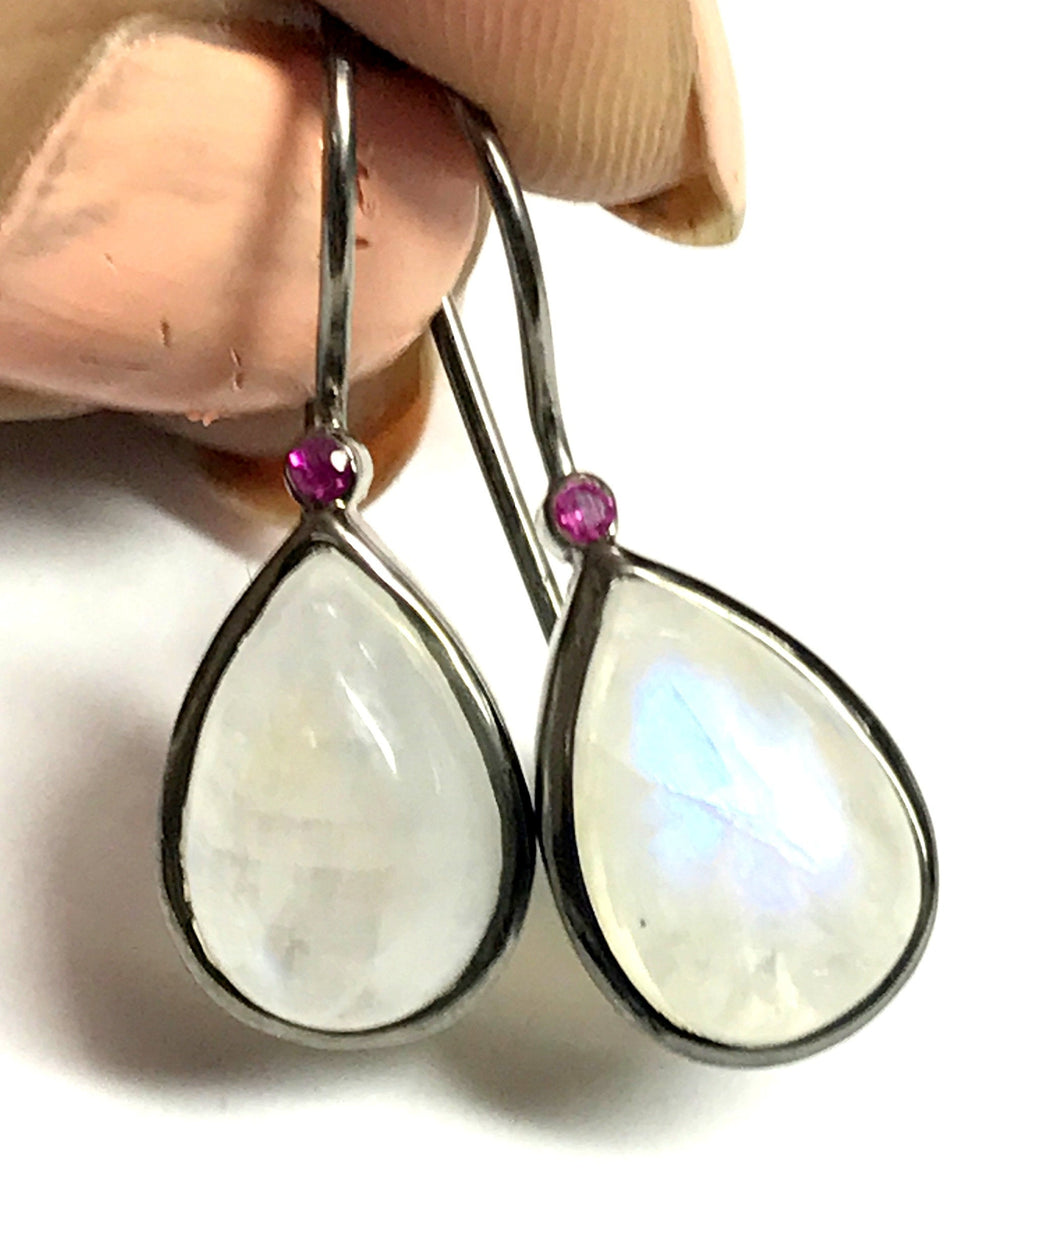 RAINBOW MOONSTONE RUBY Hoop Earring- Rainbow Drop Earring- June Birthstone Earring- Pear Shape Earrings- Cabochon Moonstone Earring